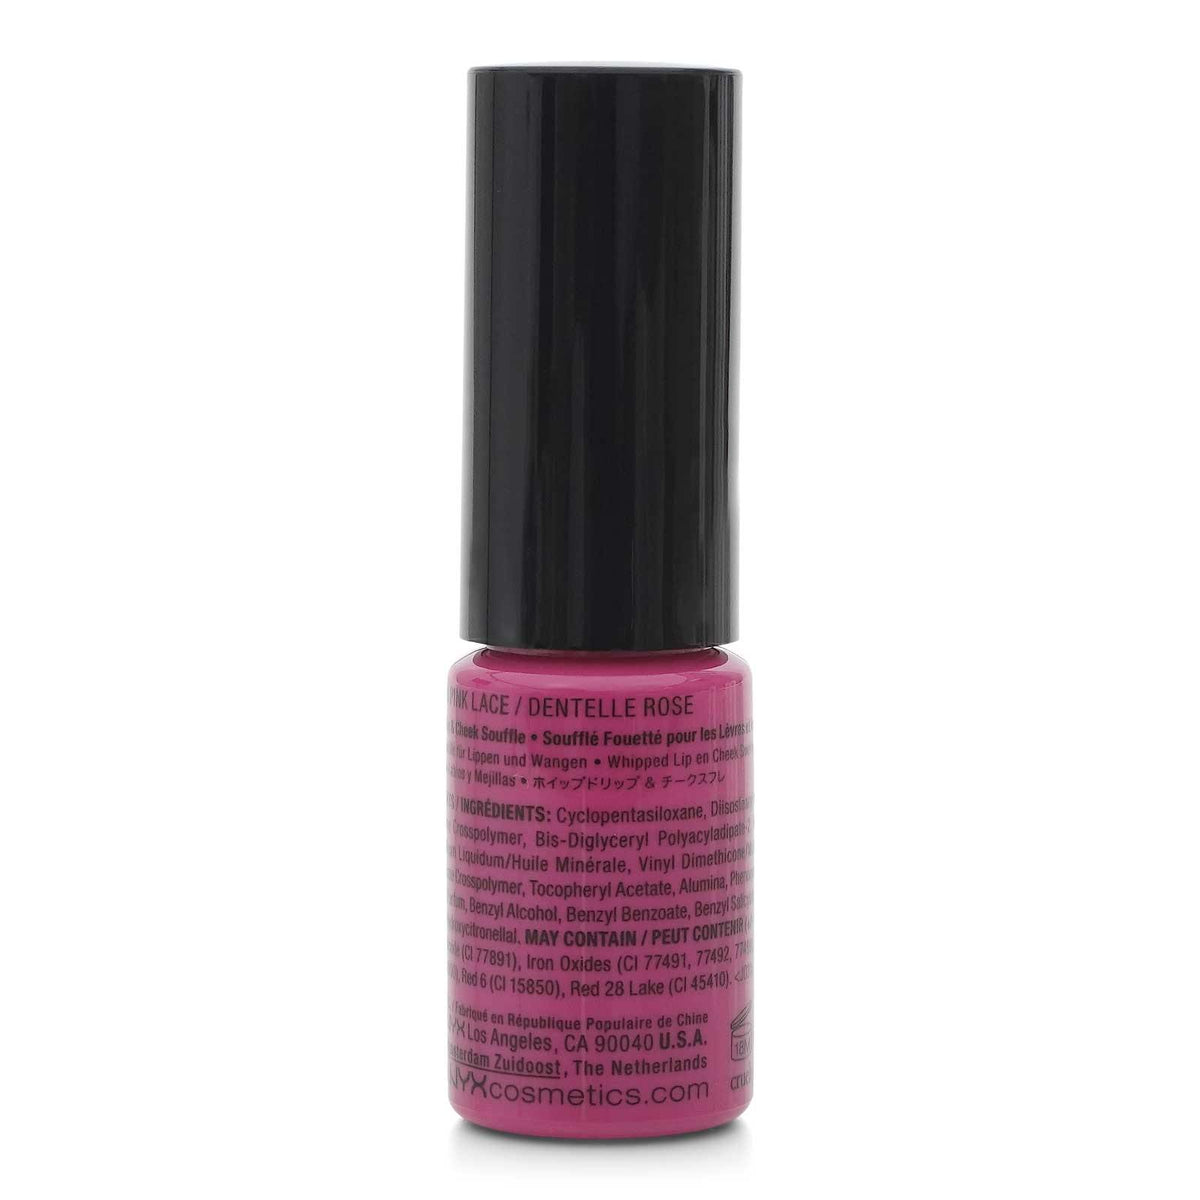 NYX WHIPPED LIP & CHEEK SOUFFLE (24/cs)